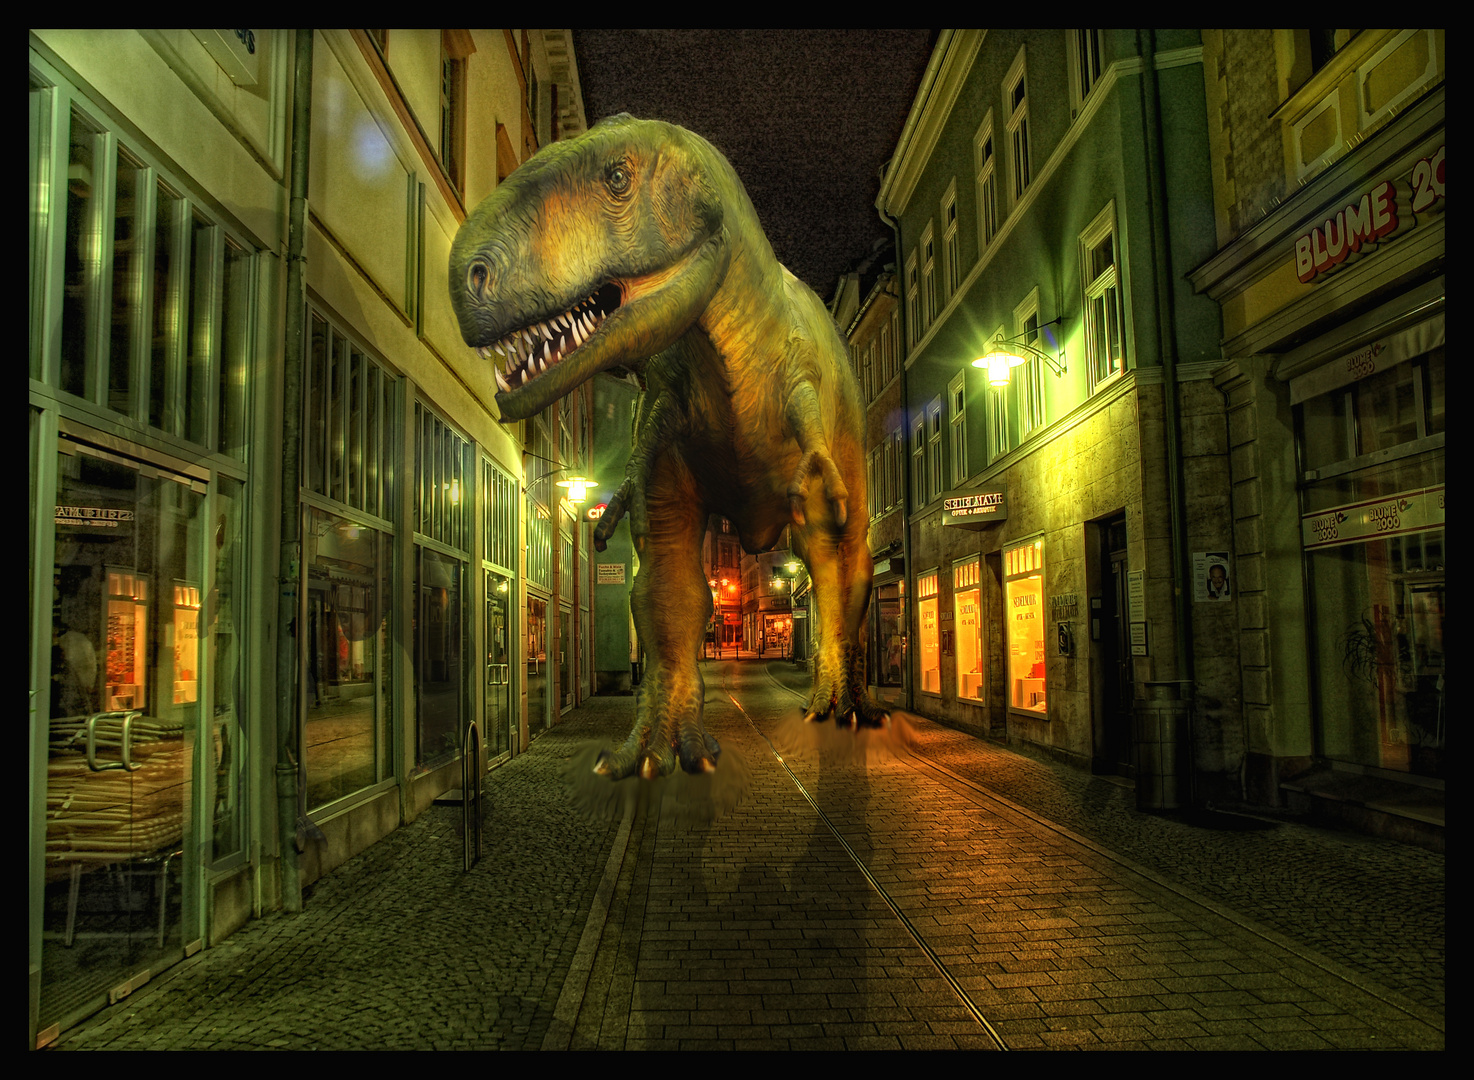 T-rex in the City